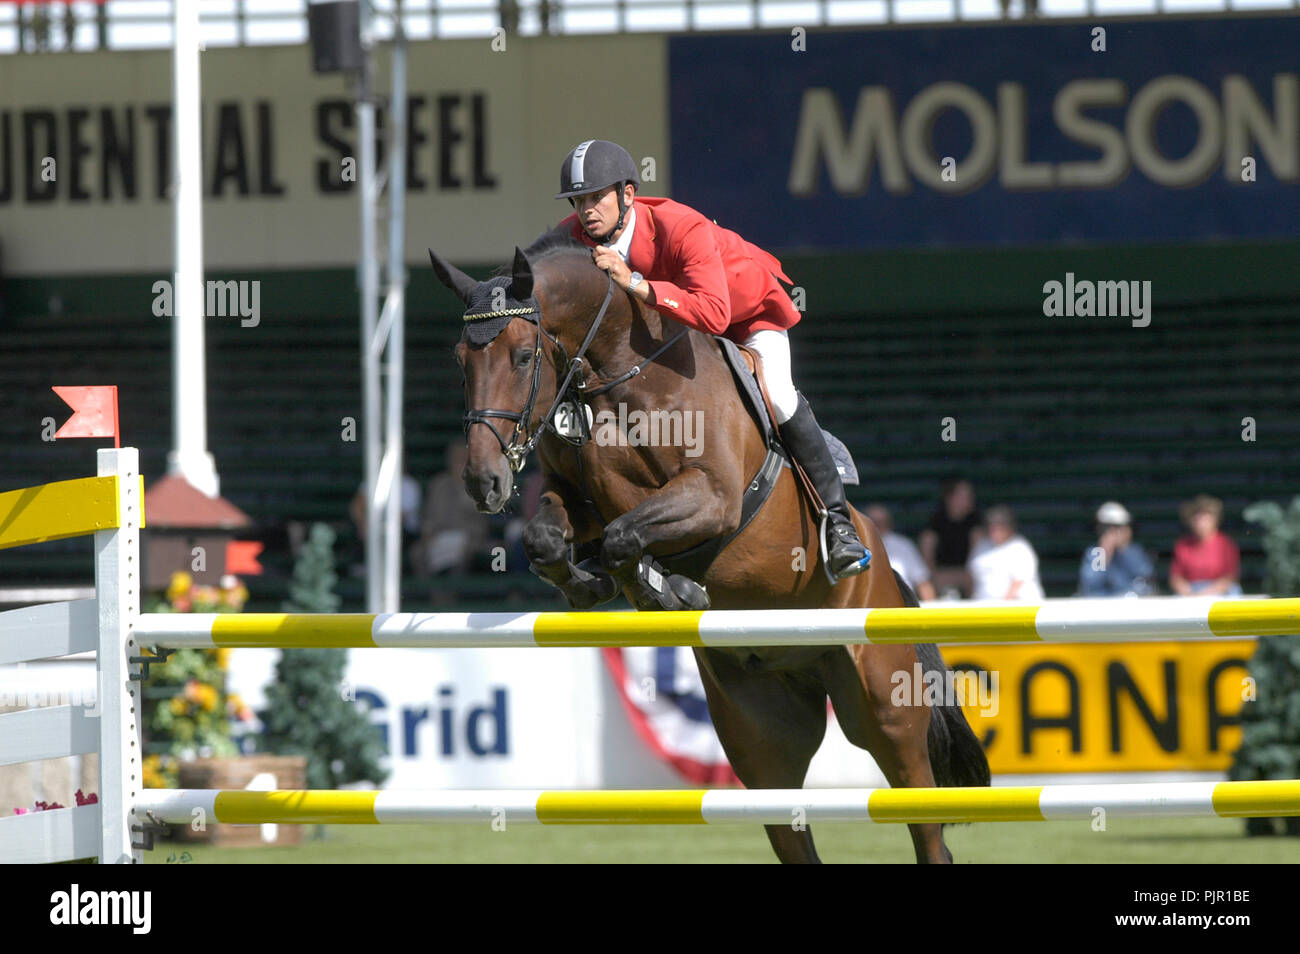 CSIO Masters, Spruce Meadows, September 2005, Prudential Steel Cup, Marco Kutscher (GER) riding Cash 63 Stock Photo